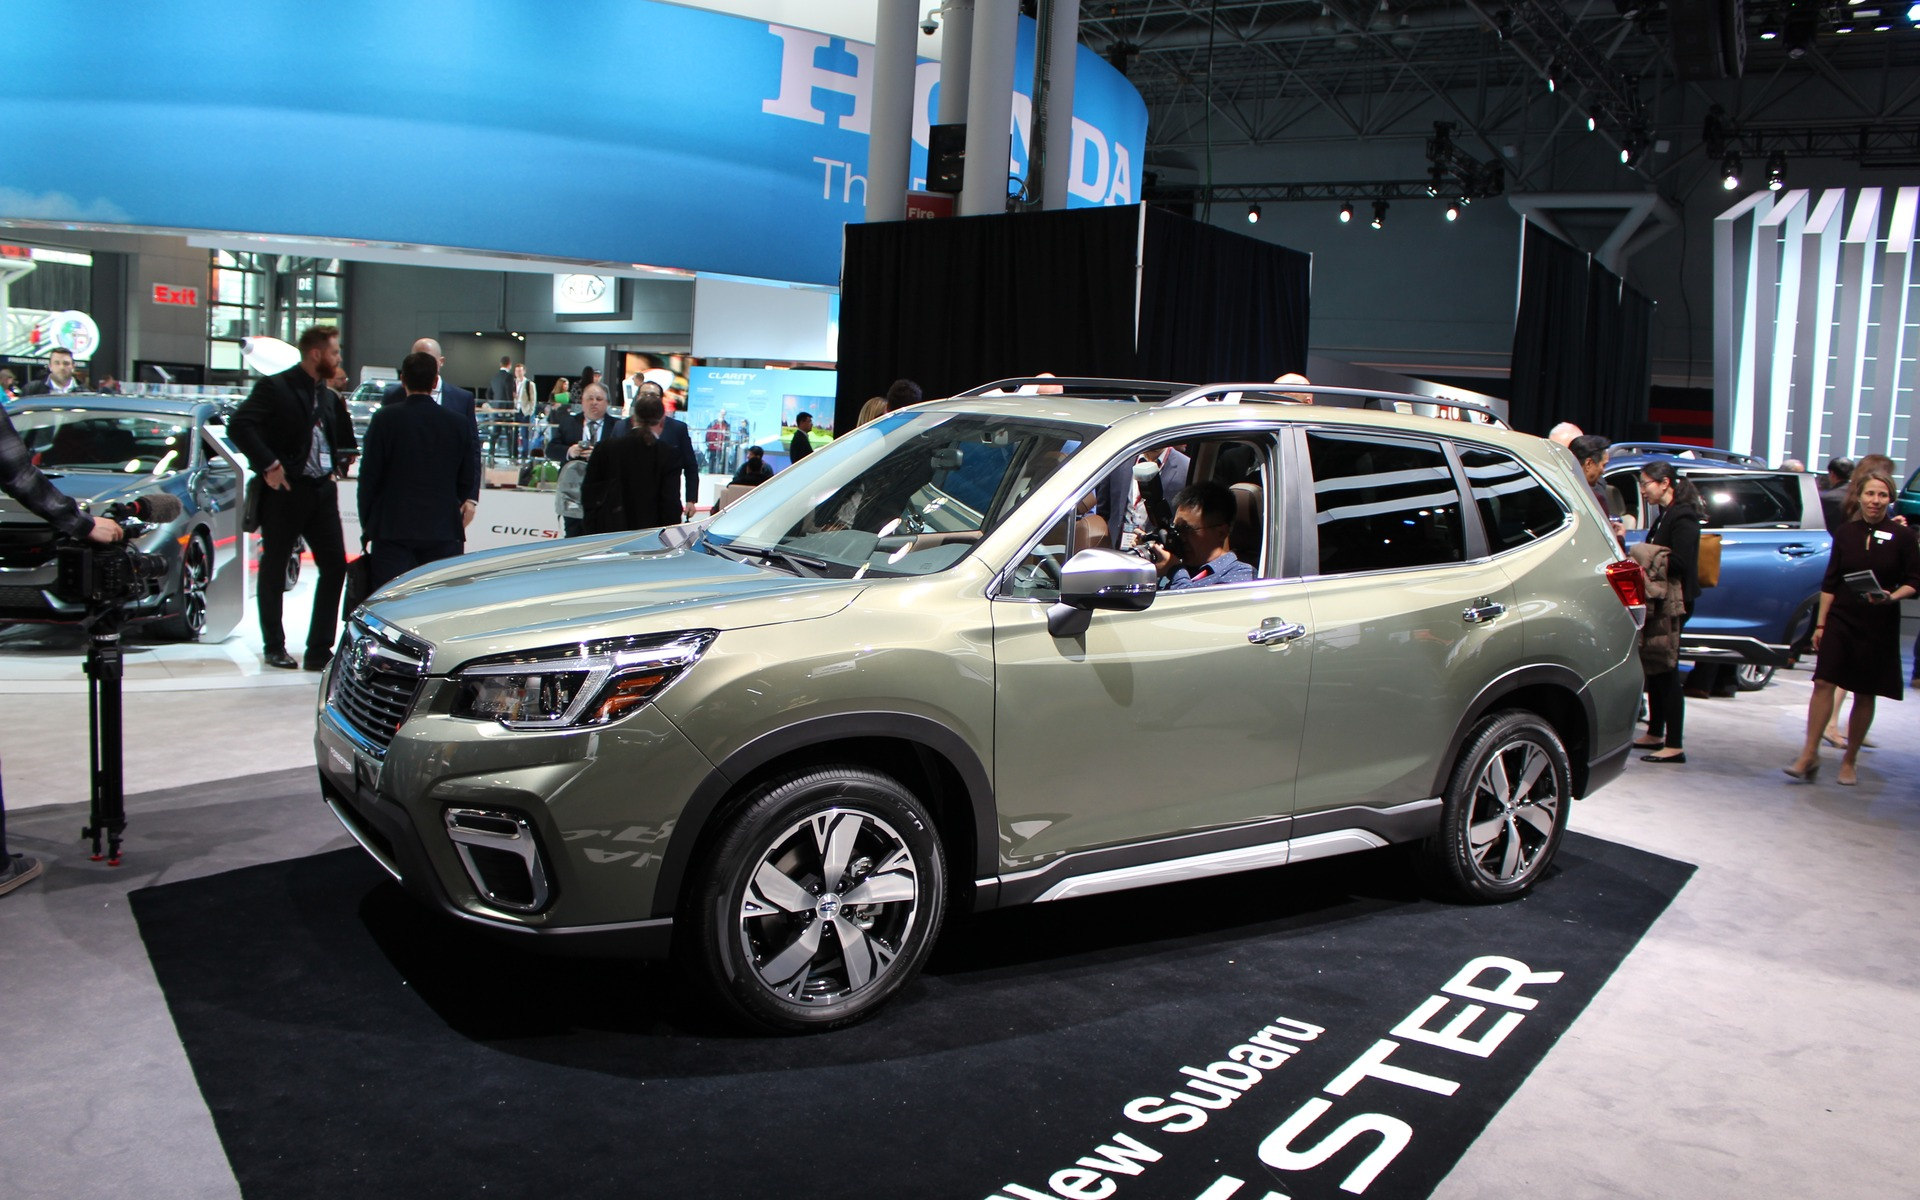 2019 Subaru Forester Redesign >> Redesigned, More Spacious 2019 Subaru Forester Unveiled in New York - 2/30